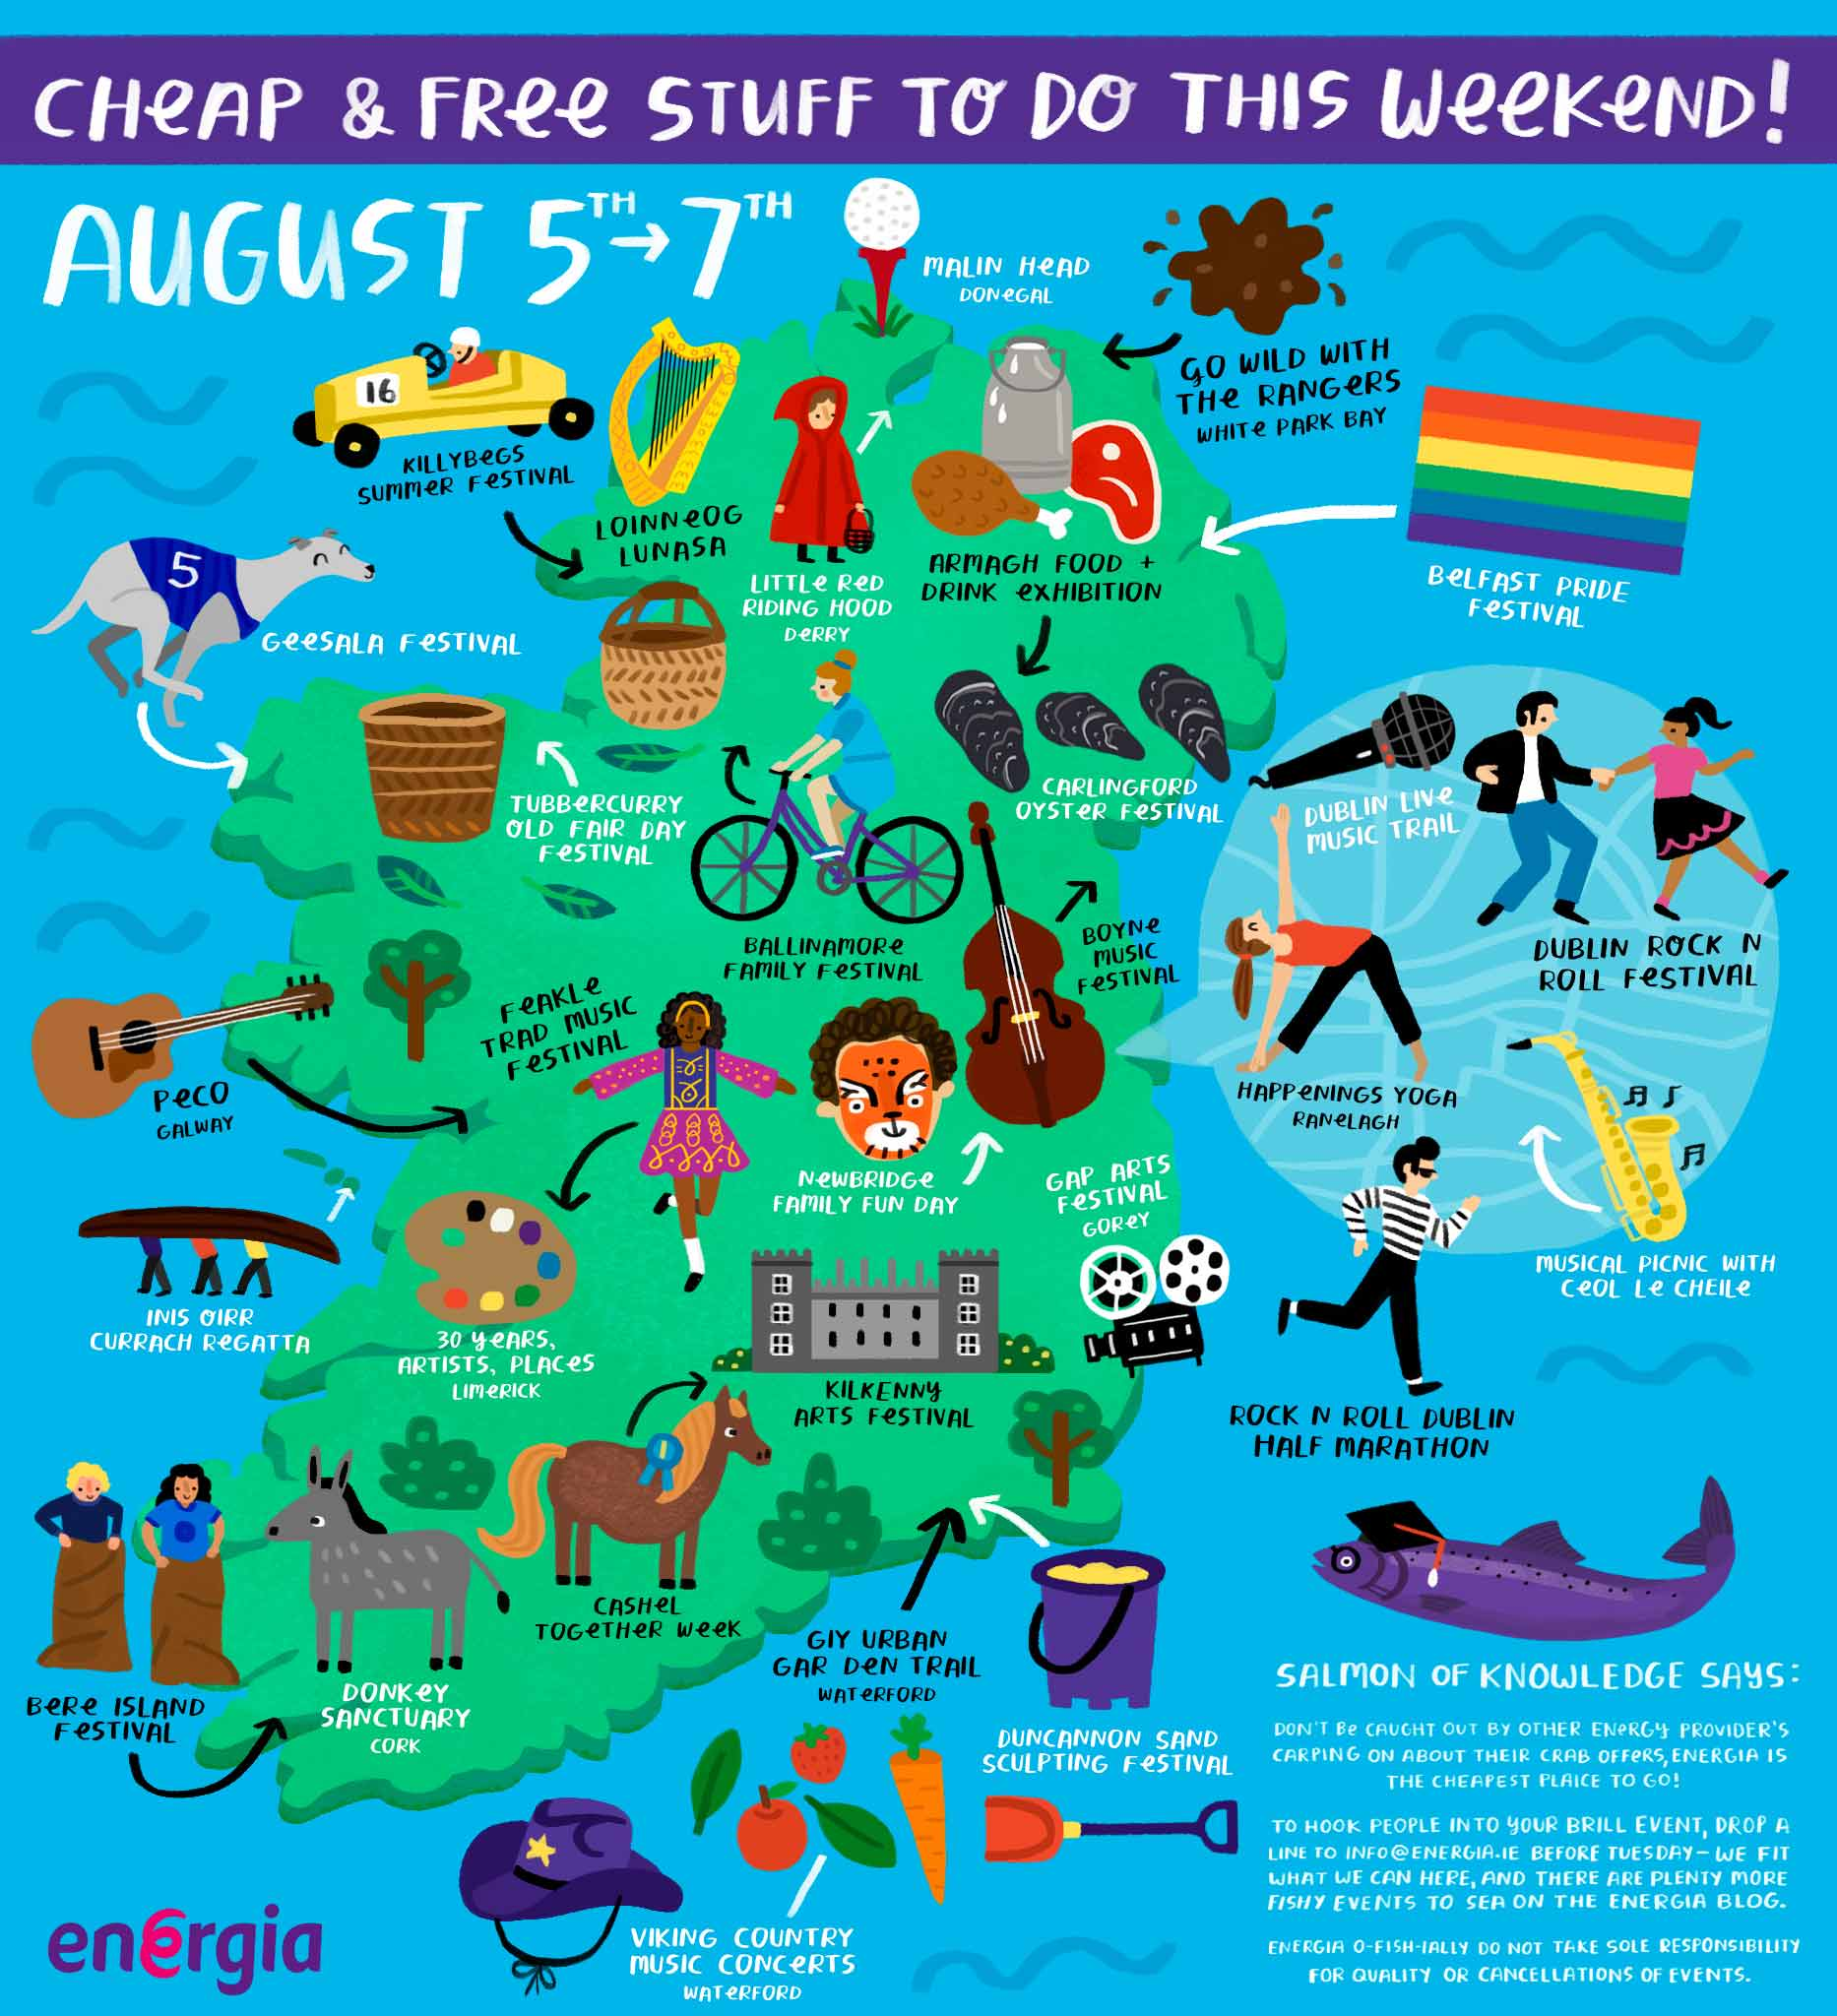 Cheap & Free stuff to do this weekend 5th - 7th August